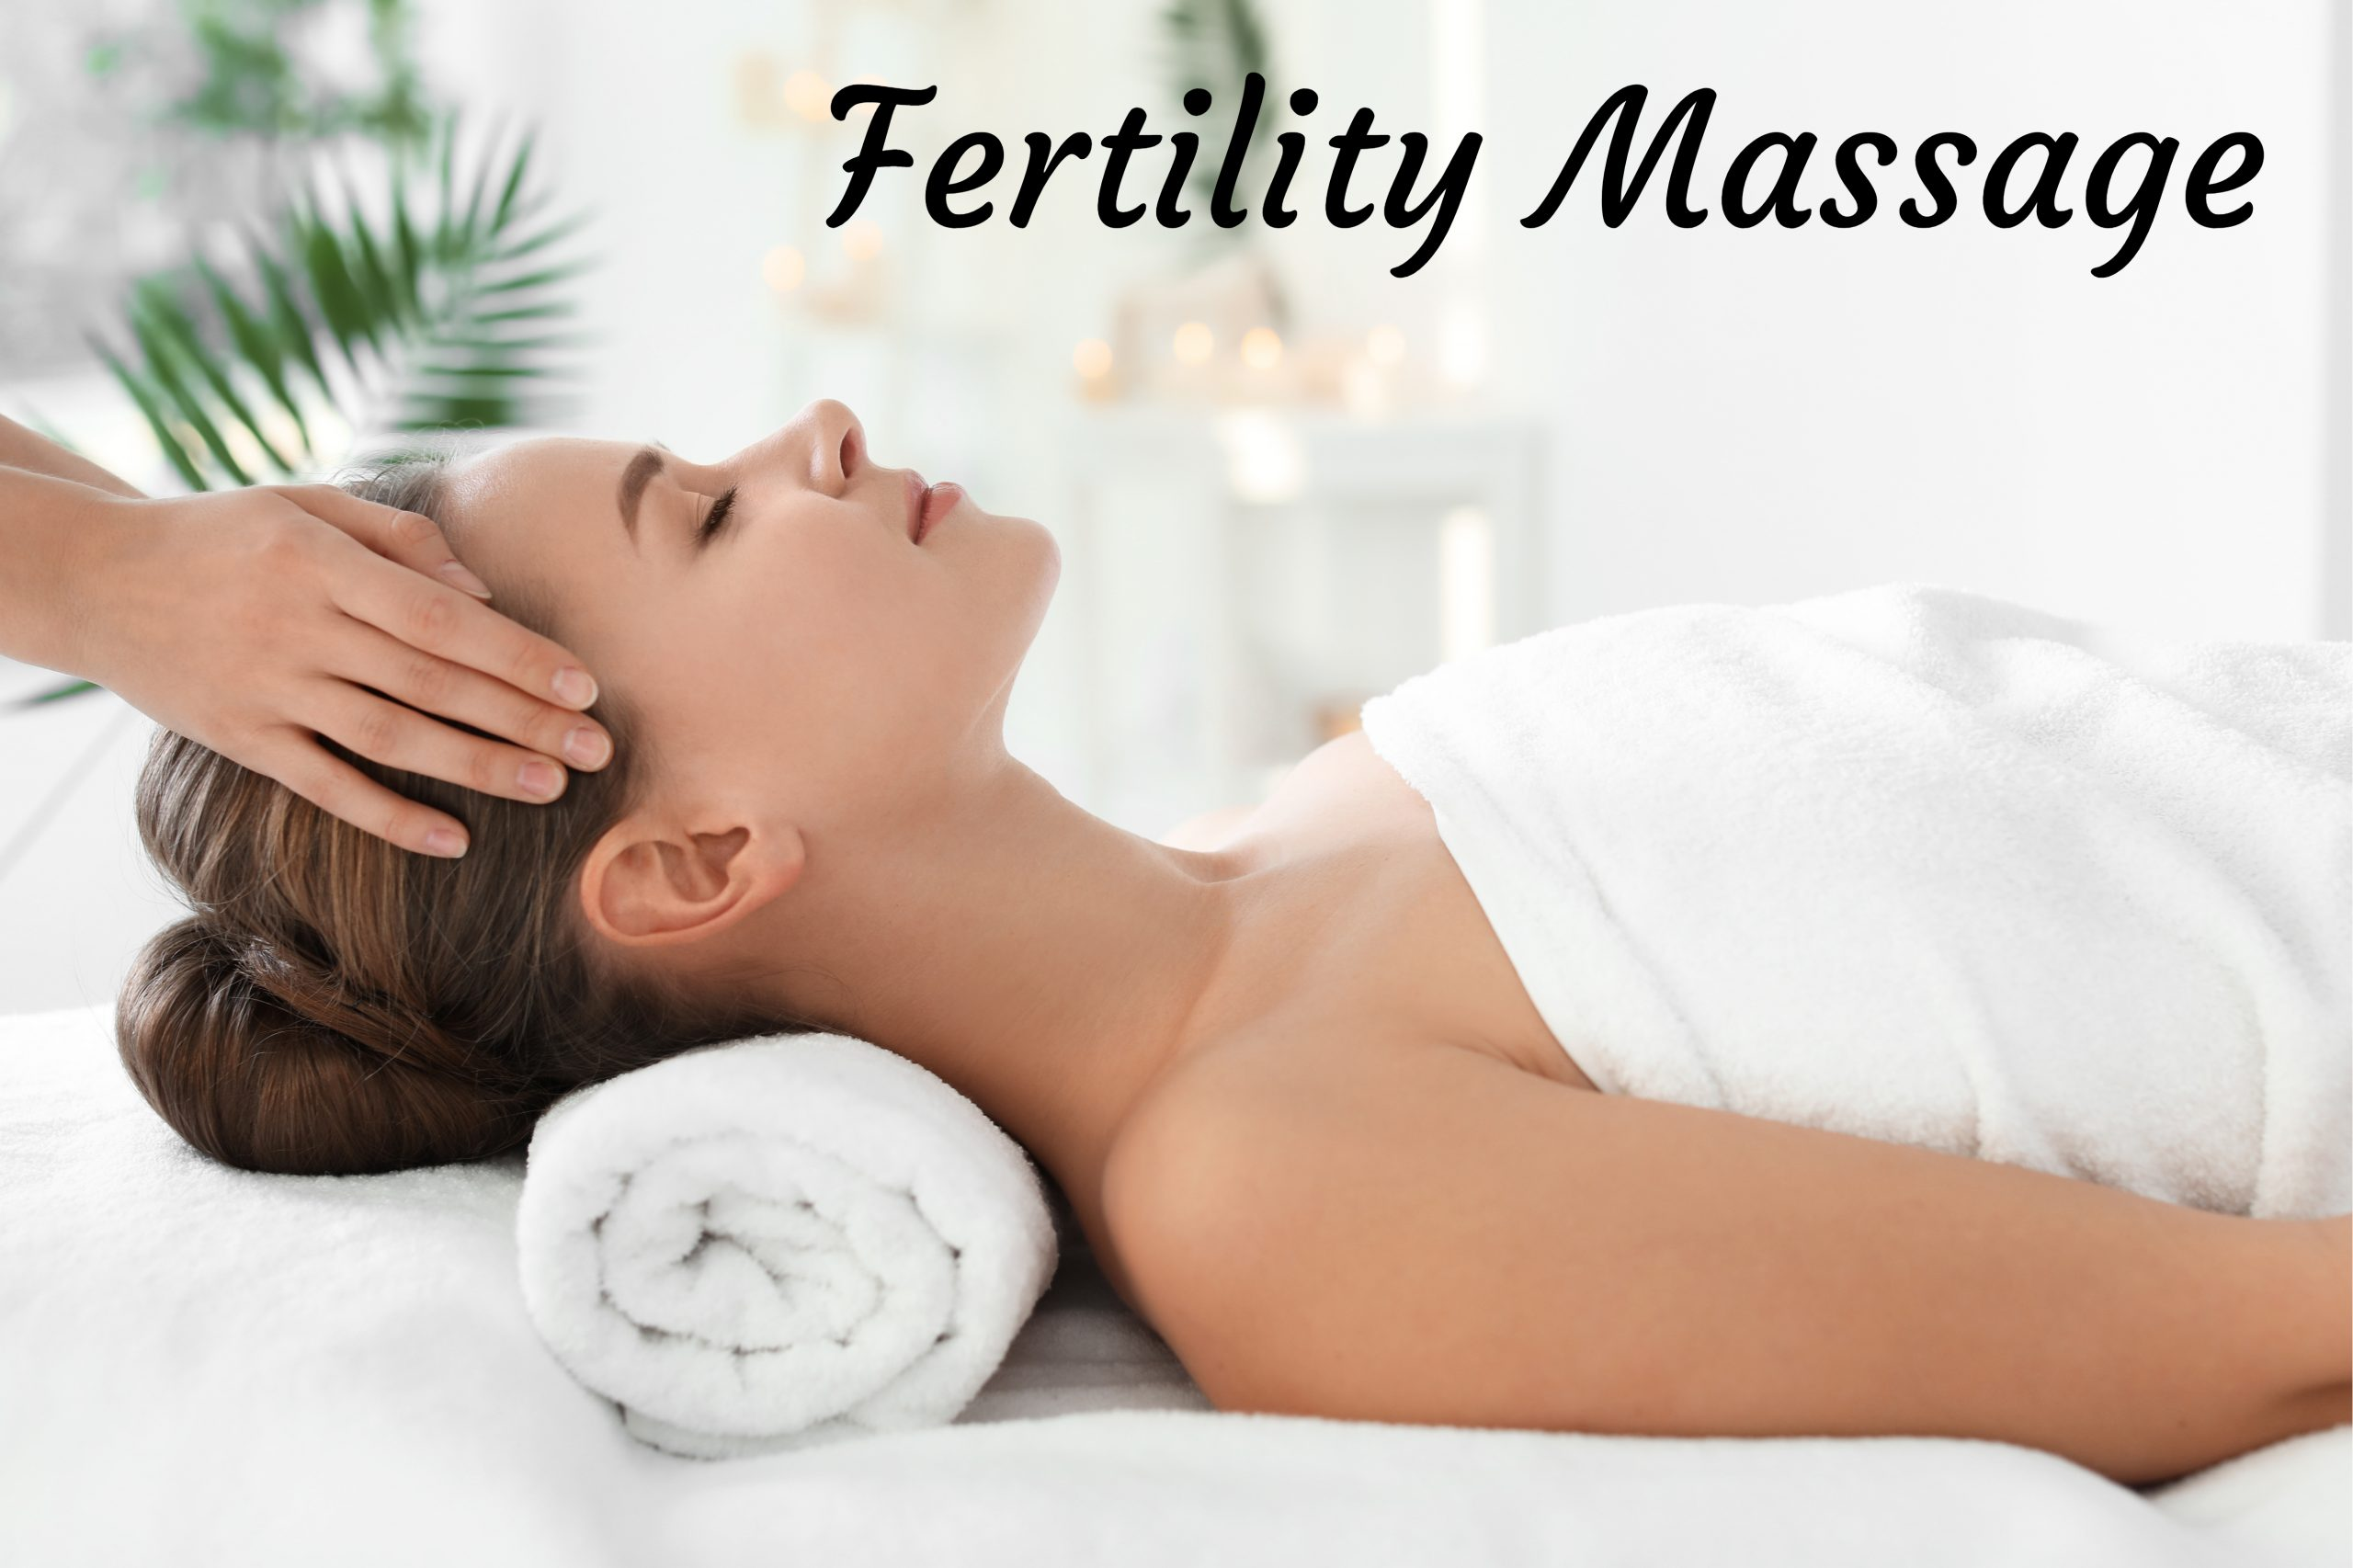 Fertility Massage- Can It Help to Get Pregnant?